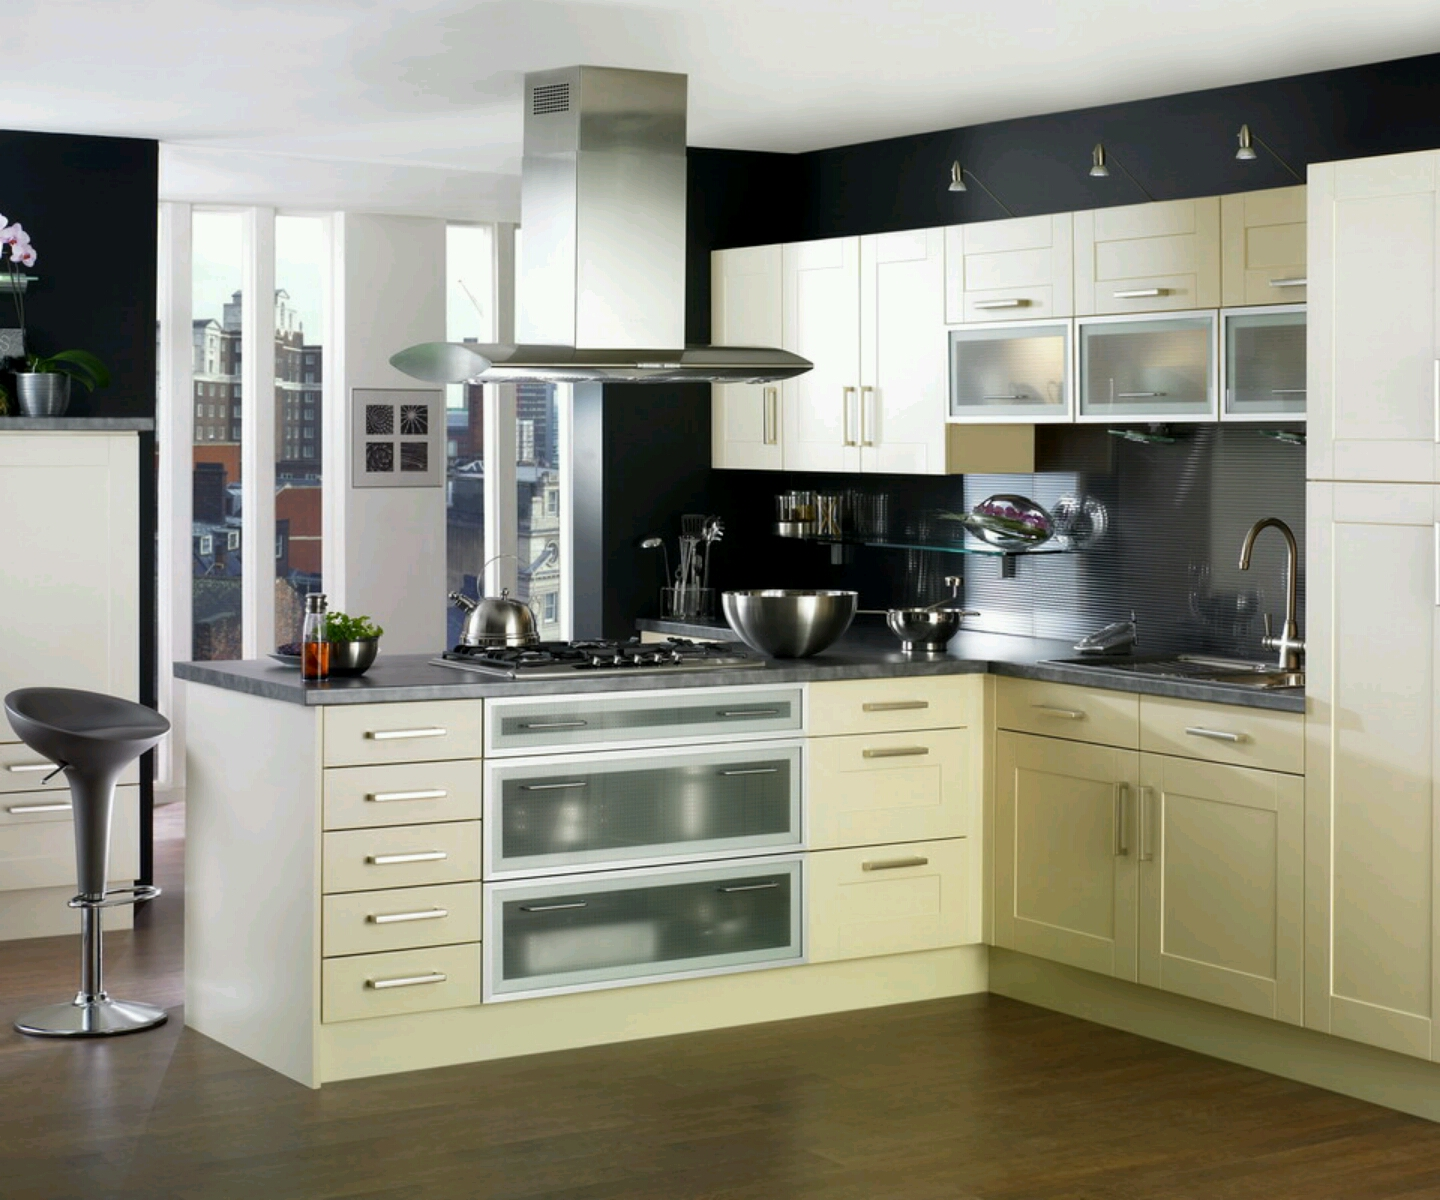 Cabinet Ideas For Kitchen